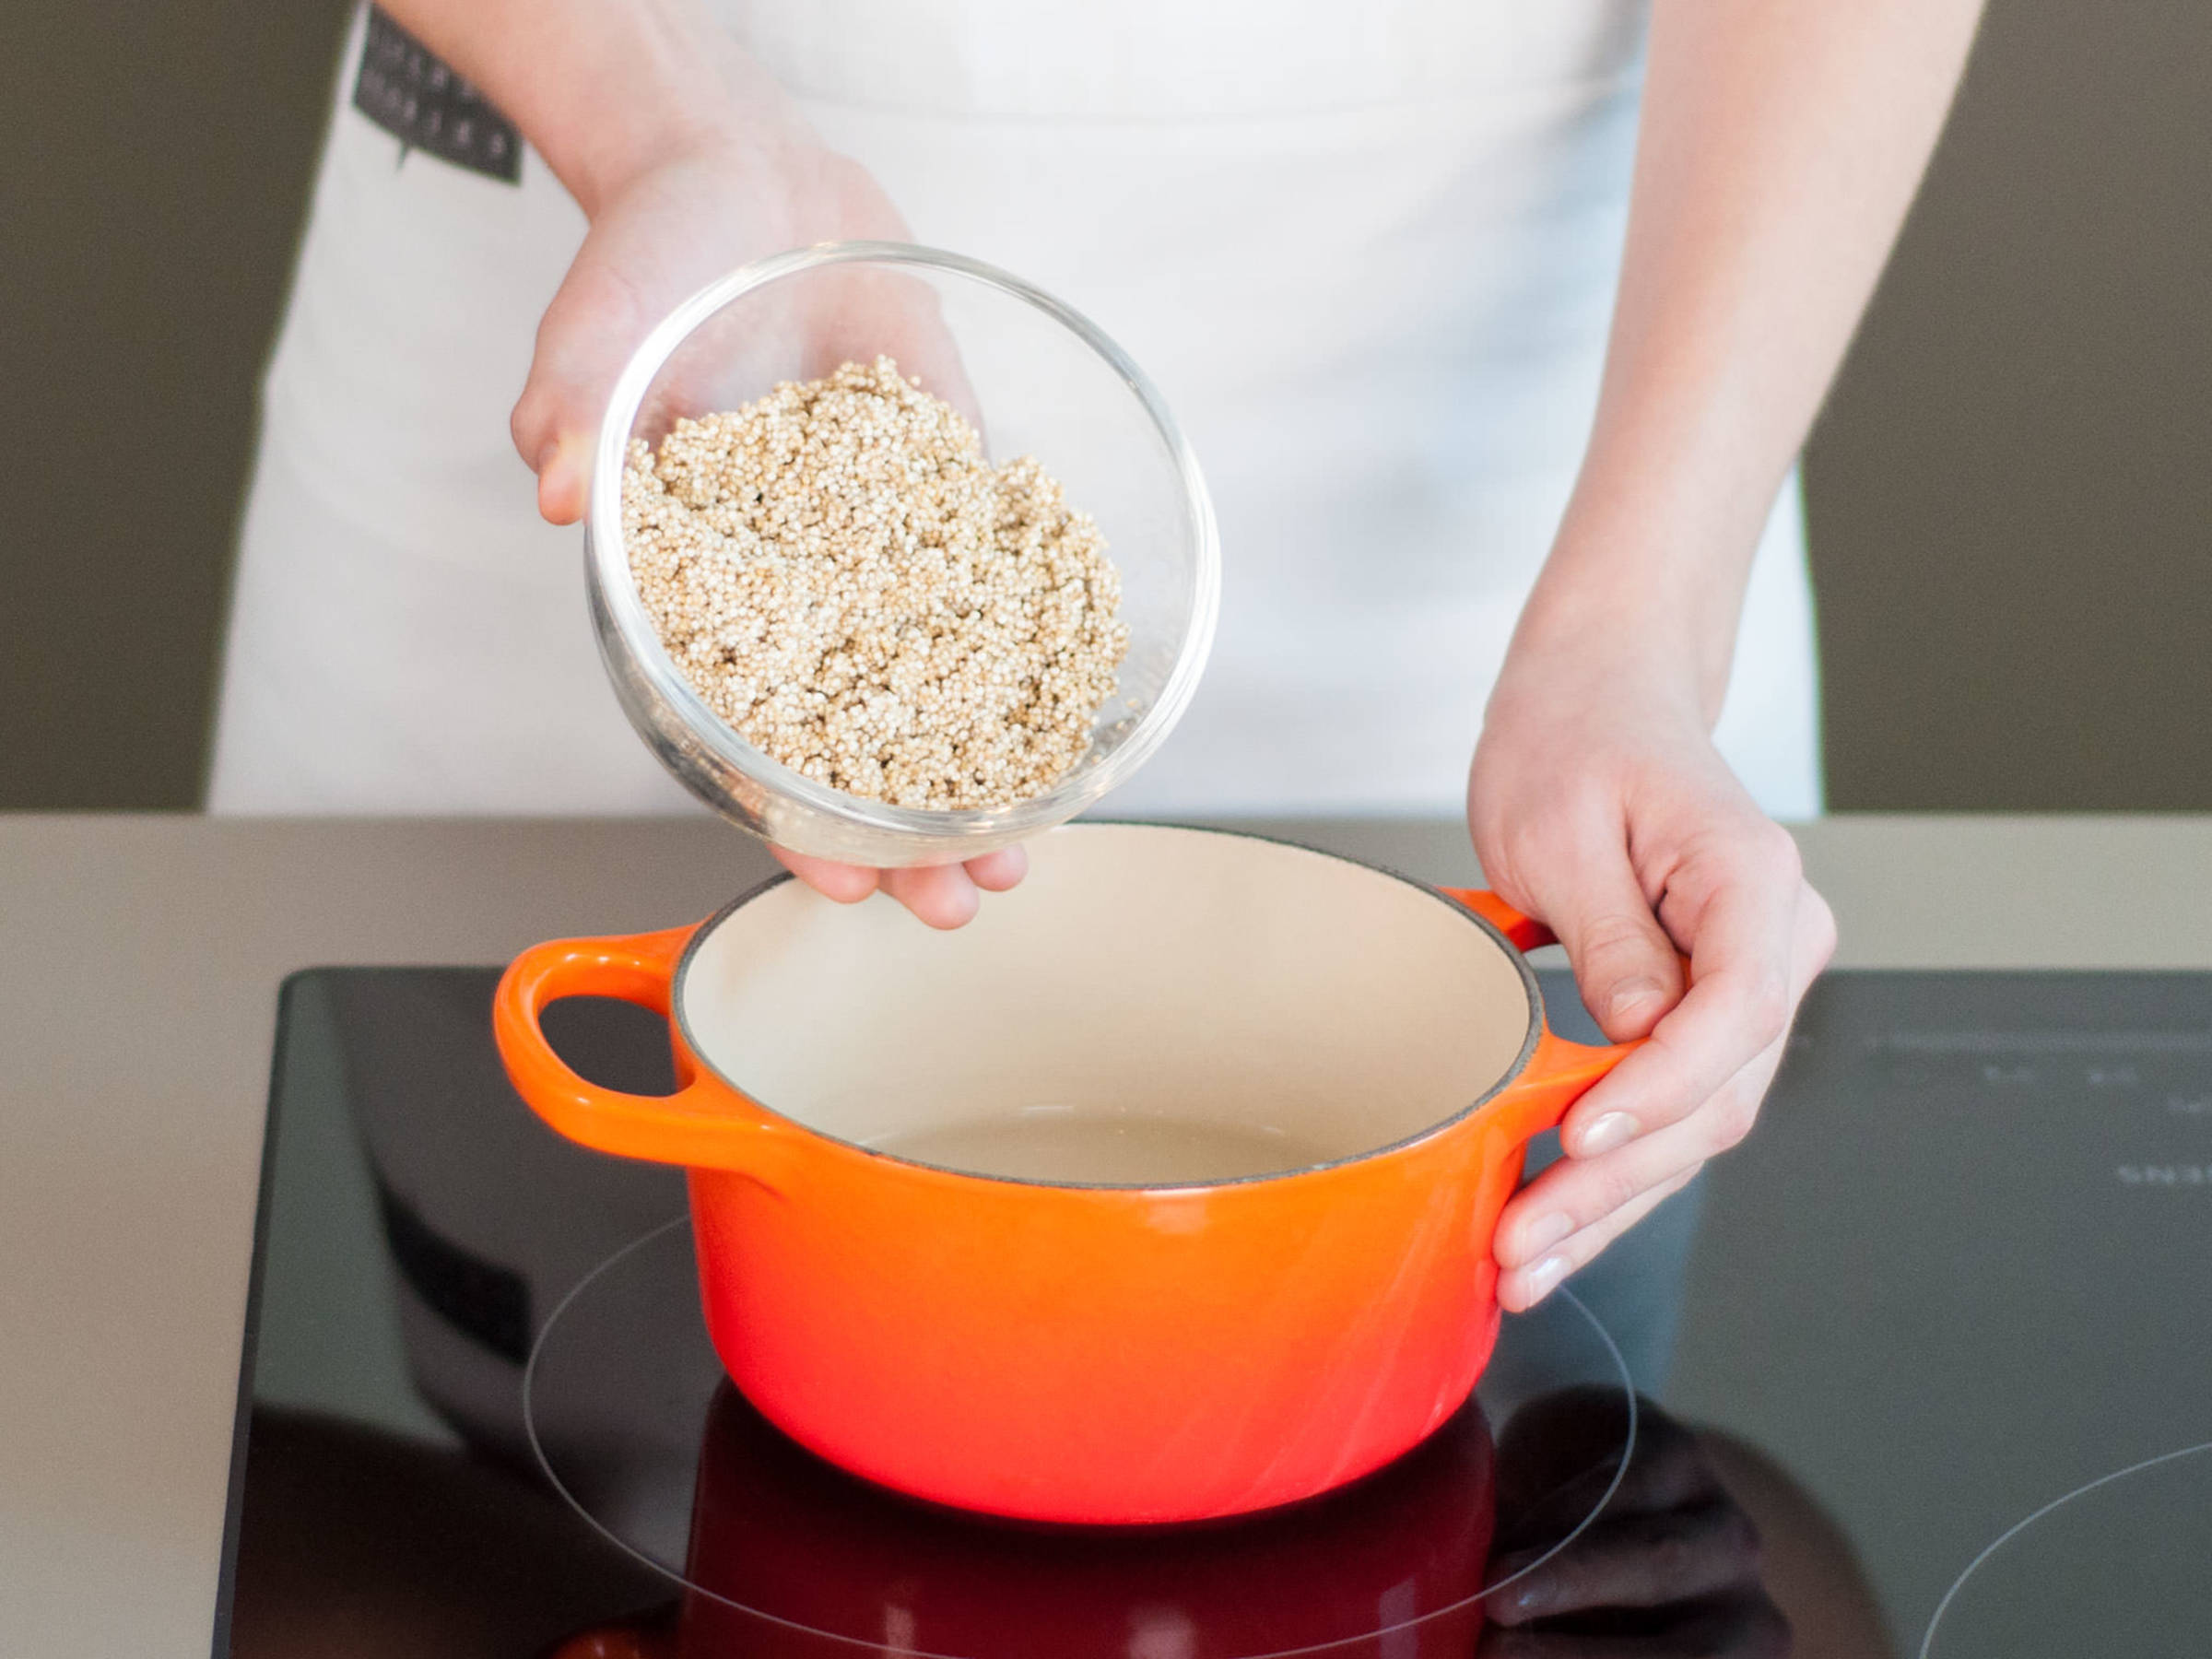 Rinse quinoa under water and add to saucepan with salted water. Bring to a boil. Then, cover and reduce heat to low. Cook for  approx. 15 min. until tender. Remove from heat and let stand, covered, for  approx. 5 min.